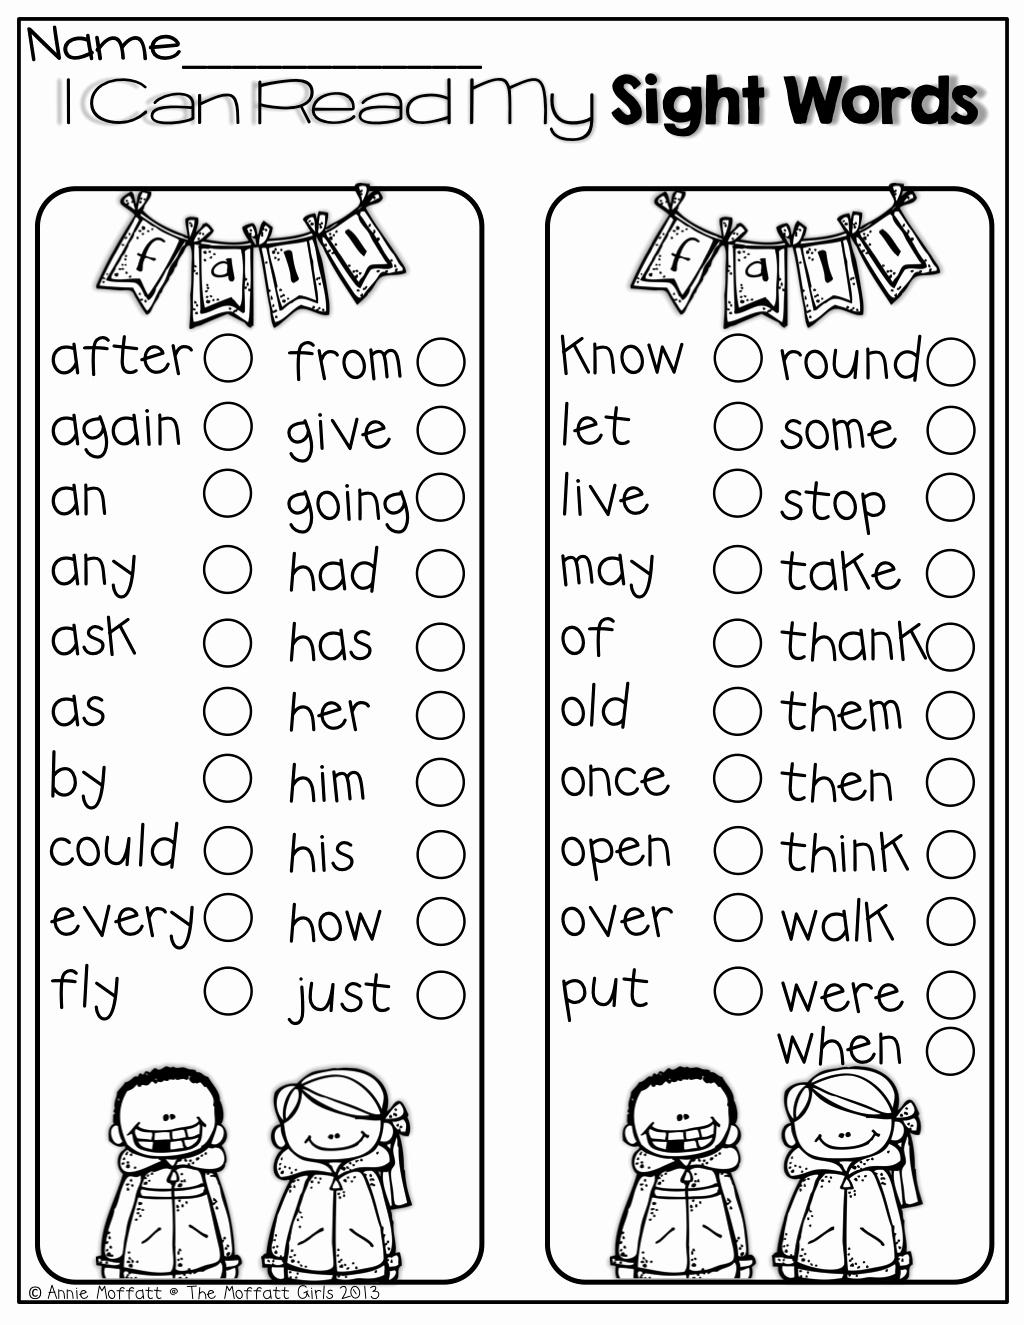 I Worksheets for Kindergarten Sight Words or I Can Read My Sight Words Perfect for Keeping Track Of How Many Sight Words You Have Learned